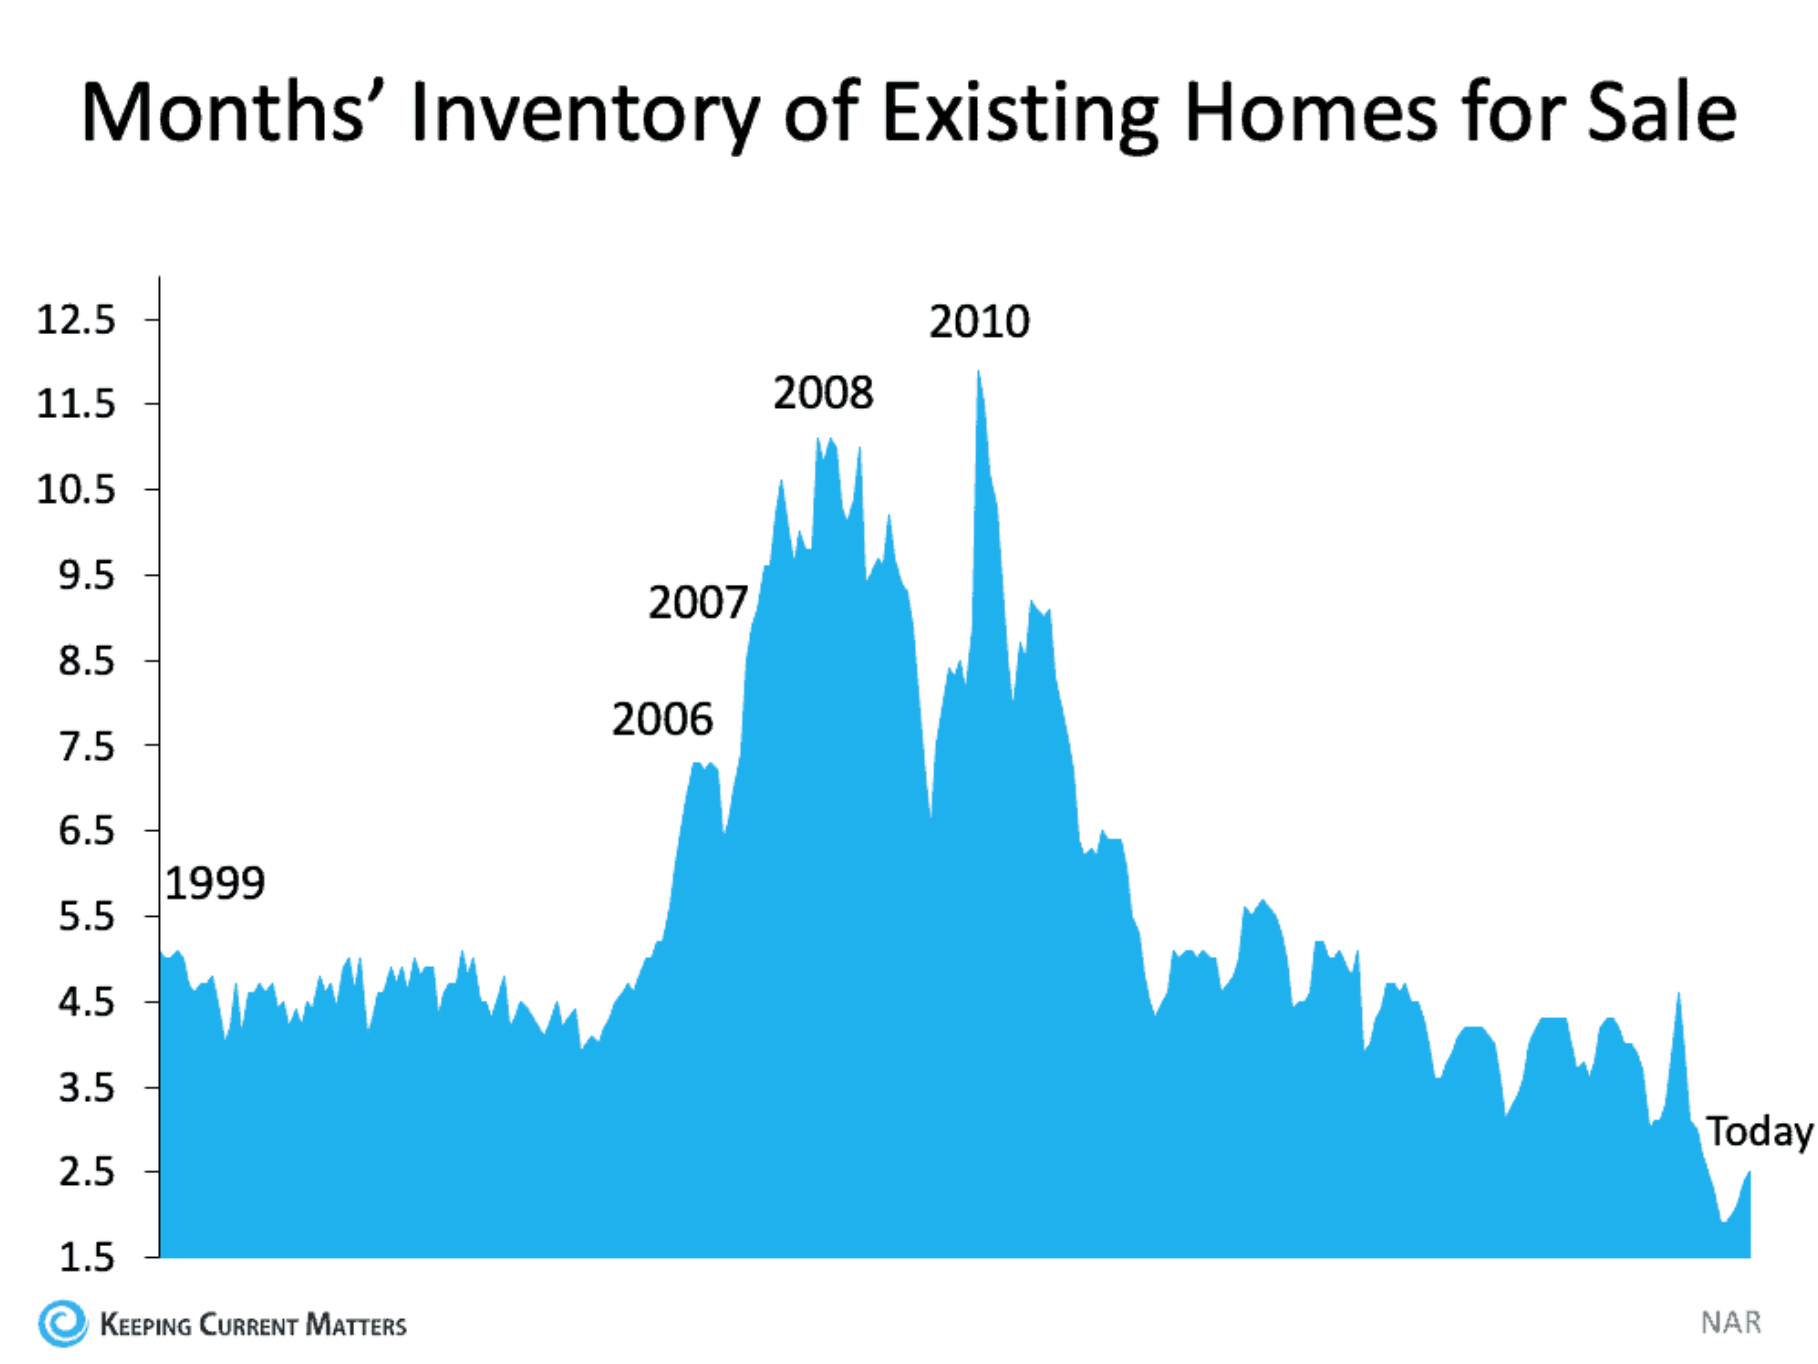 Months' inventory of existing houses for sale